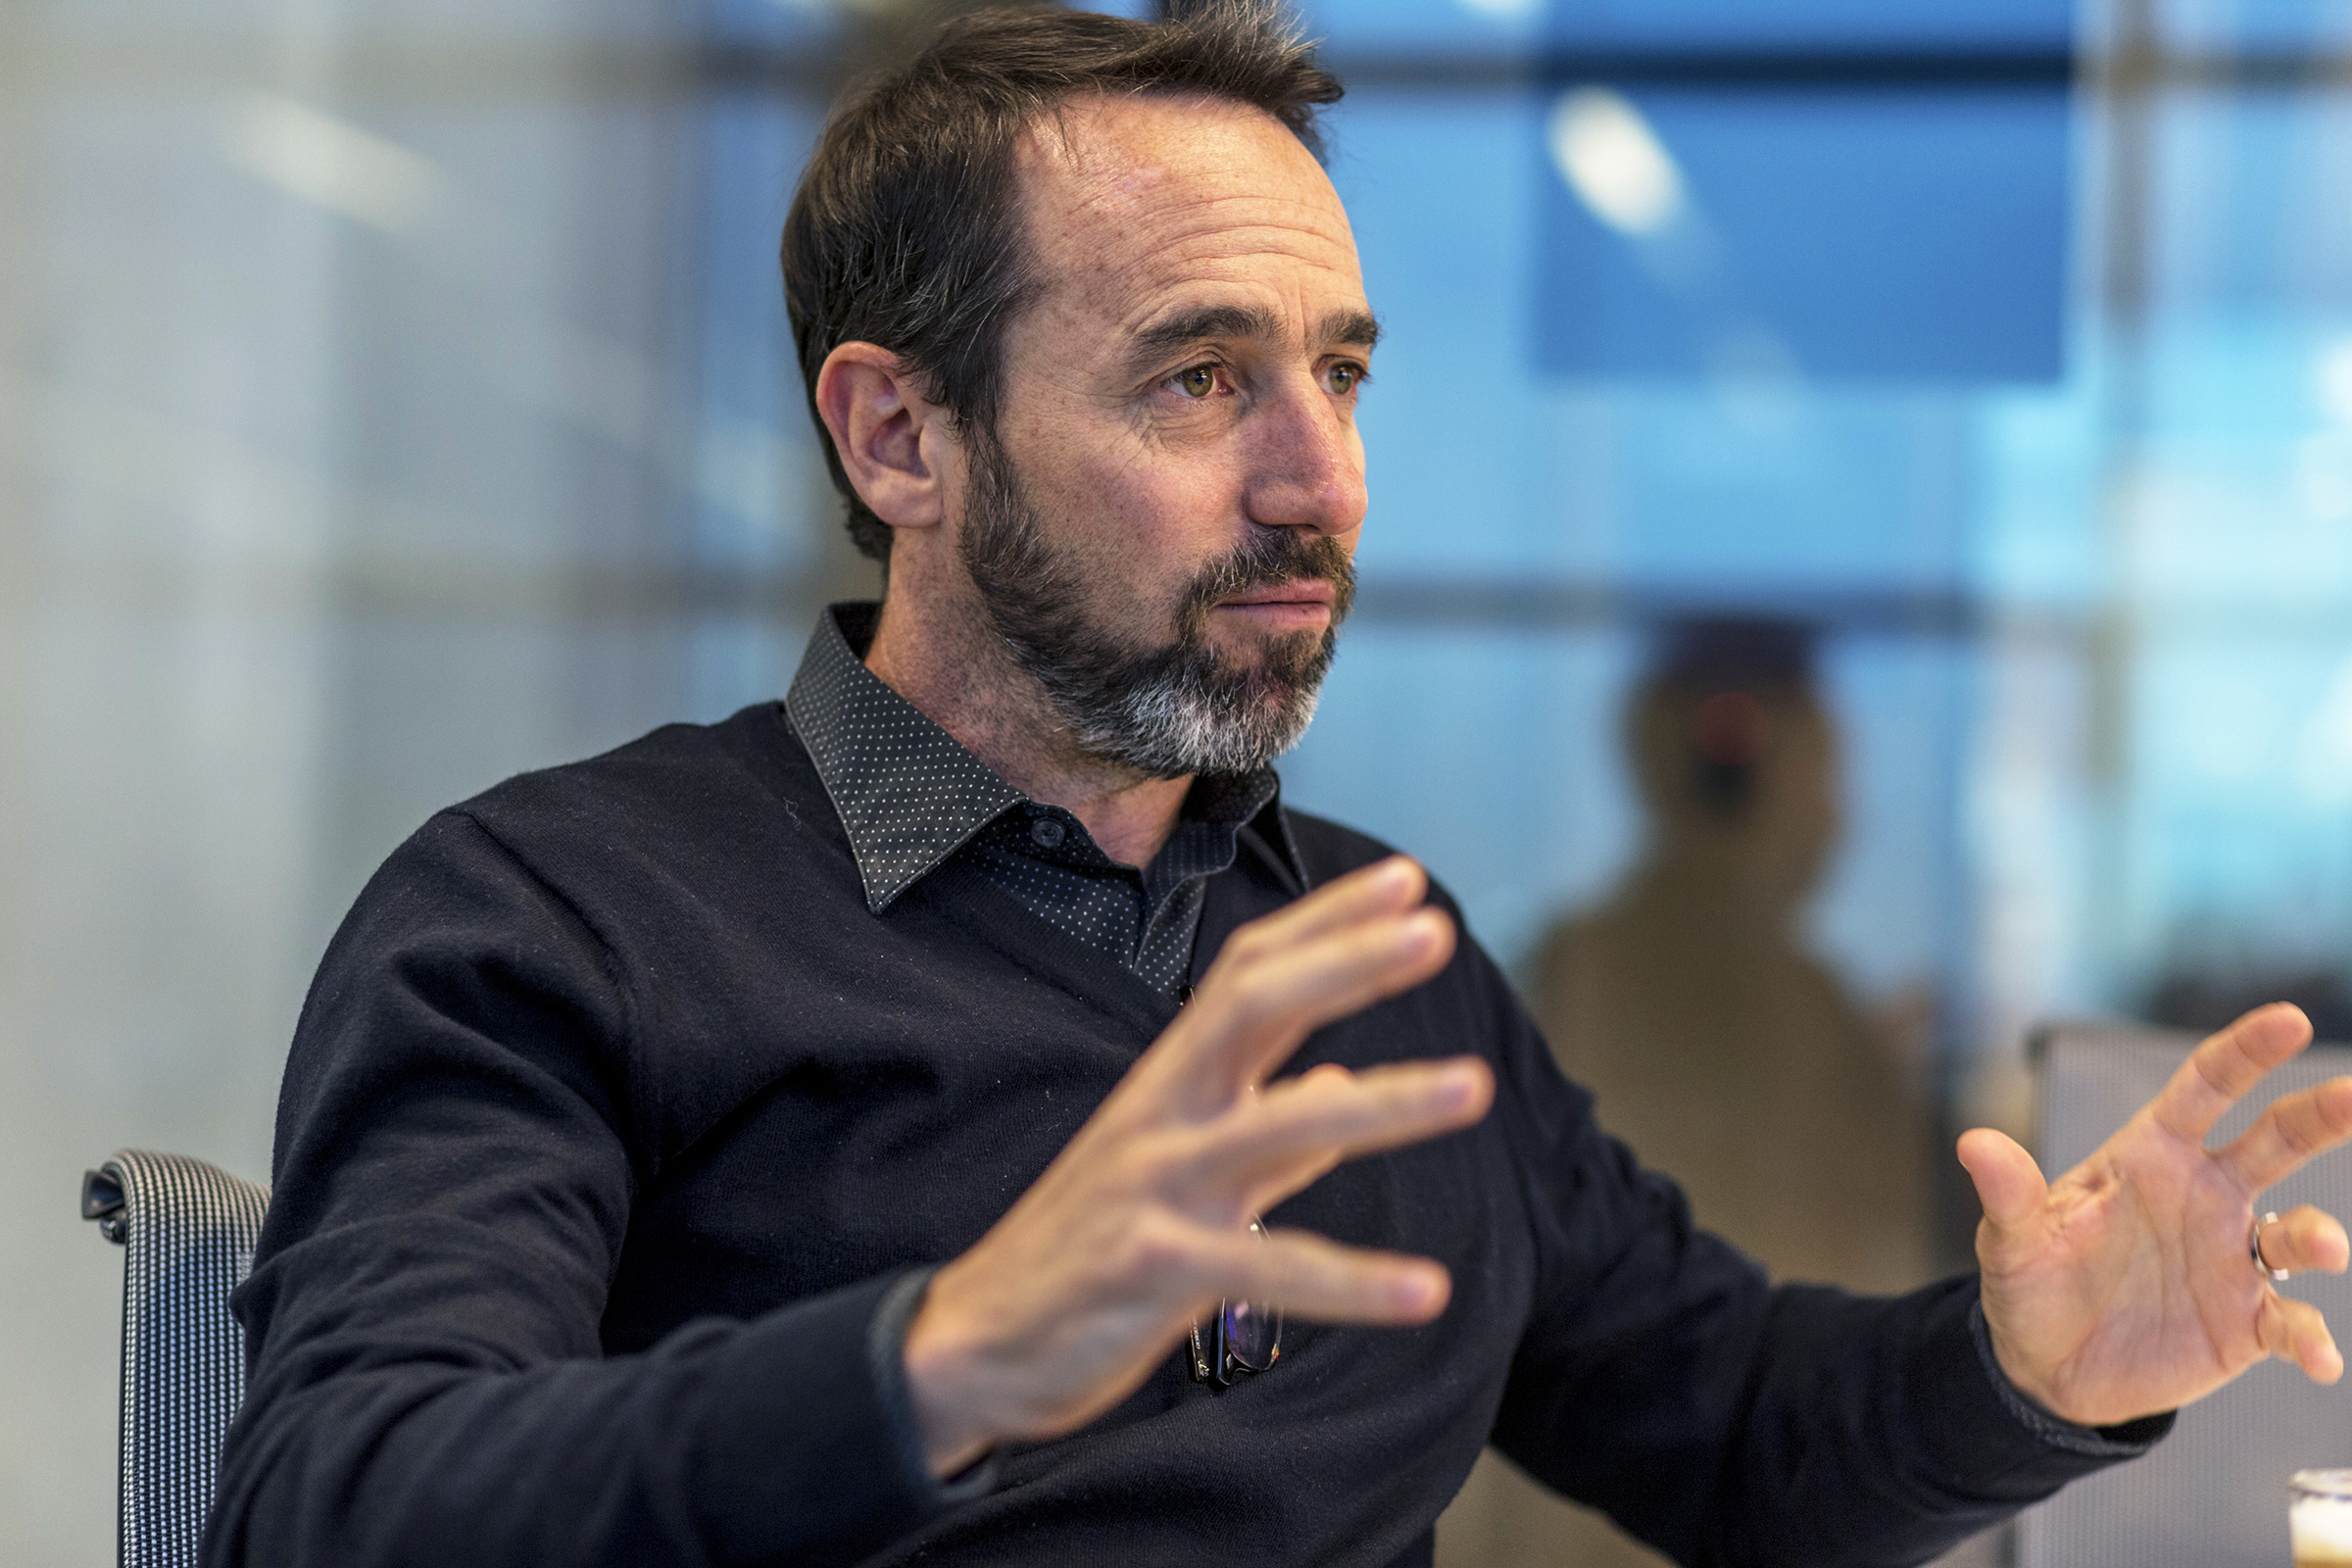 Marcos Galperin, co-founder and CEO of Mercado Libre, talks during an interview in Buenos Aires, Argentina on Aug. 8, 2019.